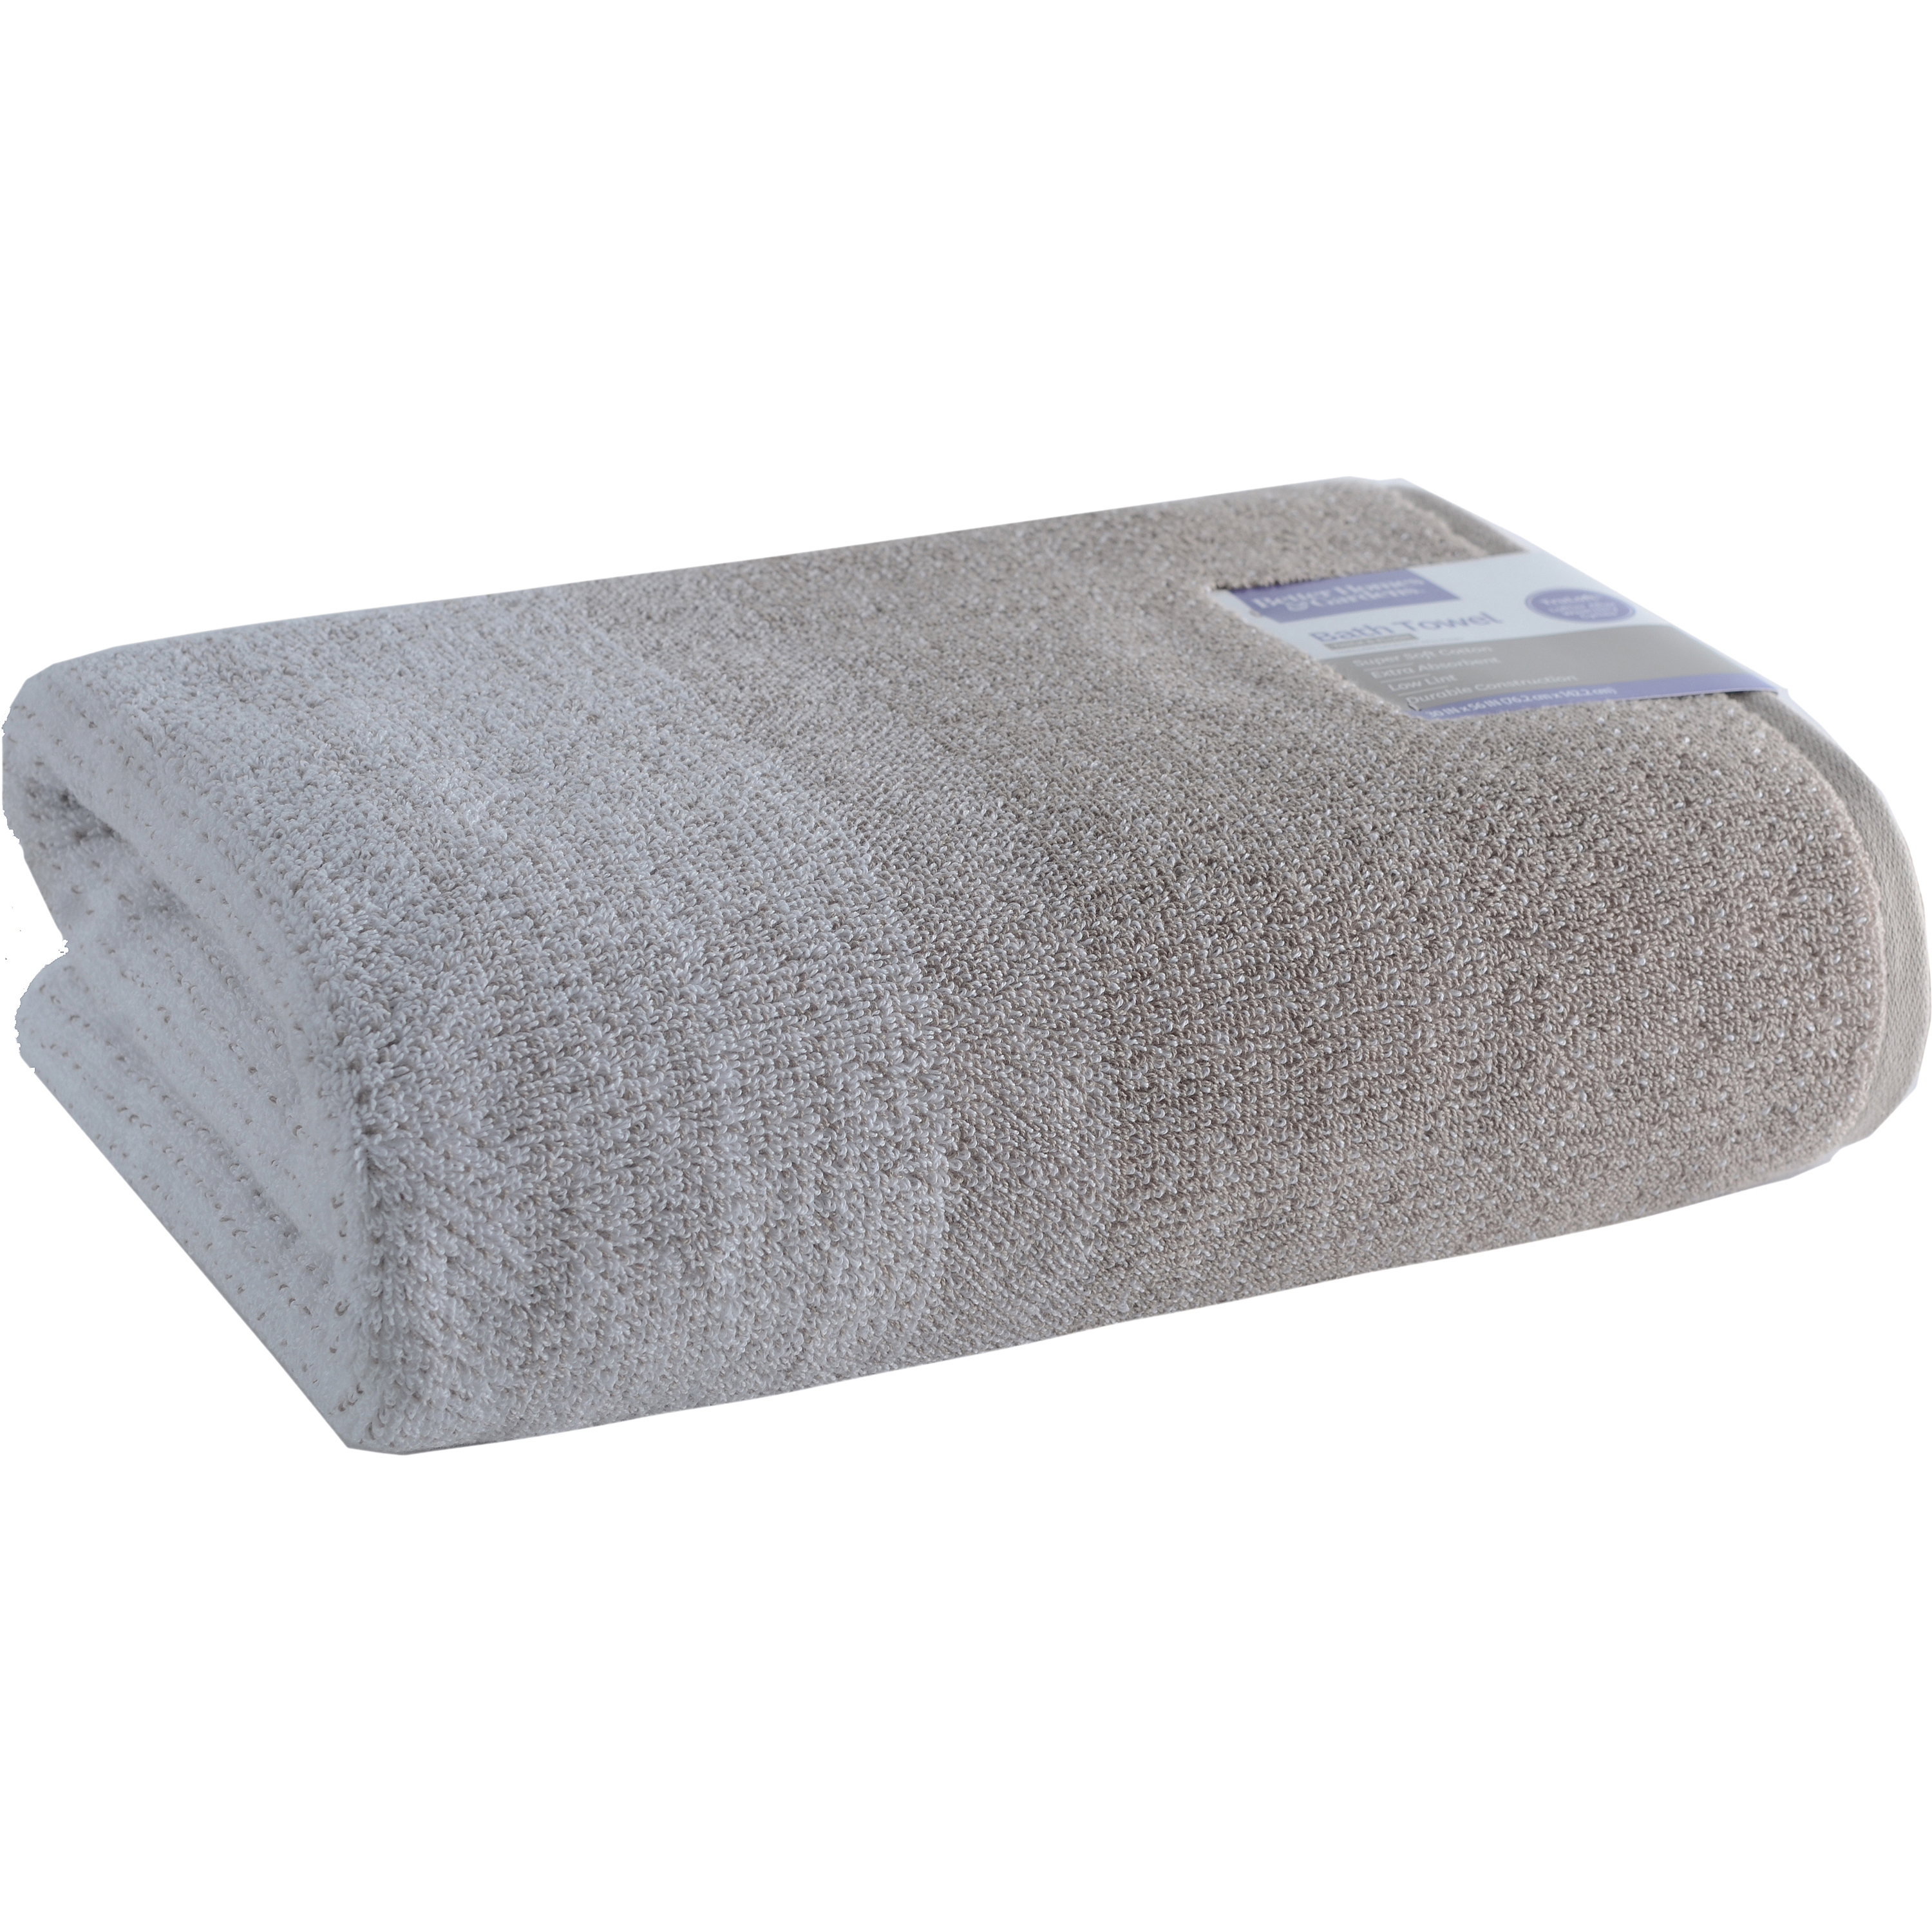 Better Homes and Gardens Thick and Plush Heathered Bath Towel Collection by Loftex China LTD